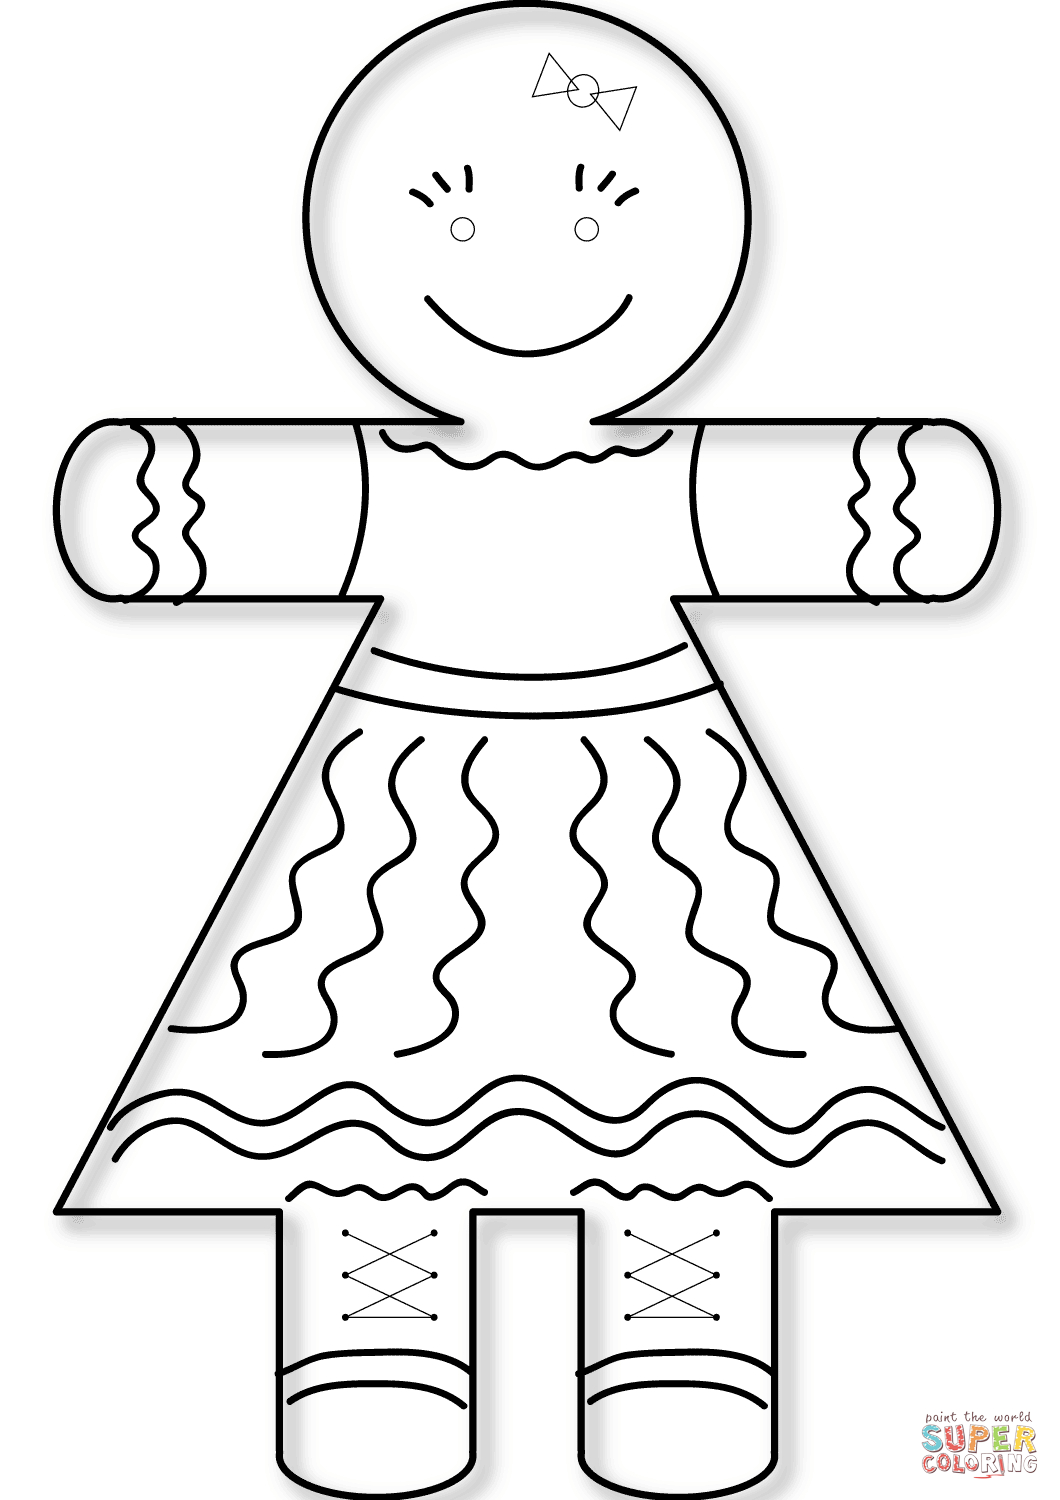 Gingerbread Girl Coloring Page   Free Printable Coloring Pages - Gingerbread Template Free Printable